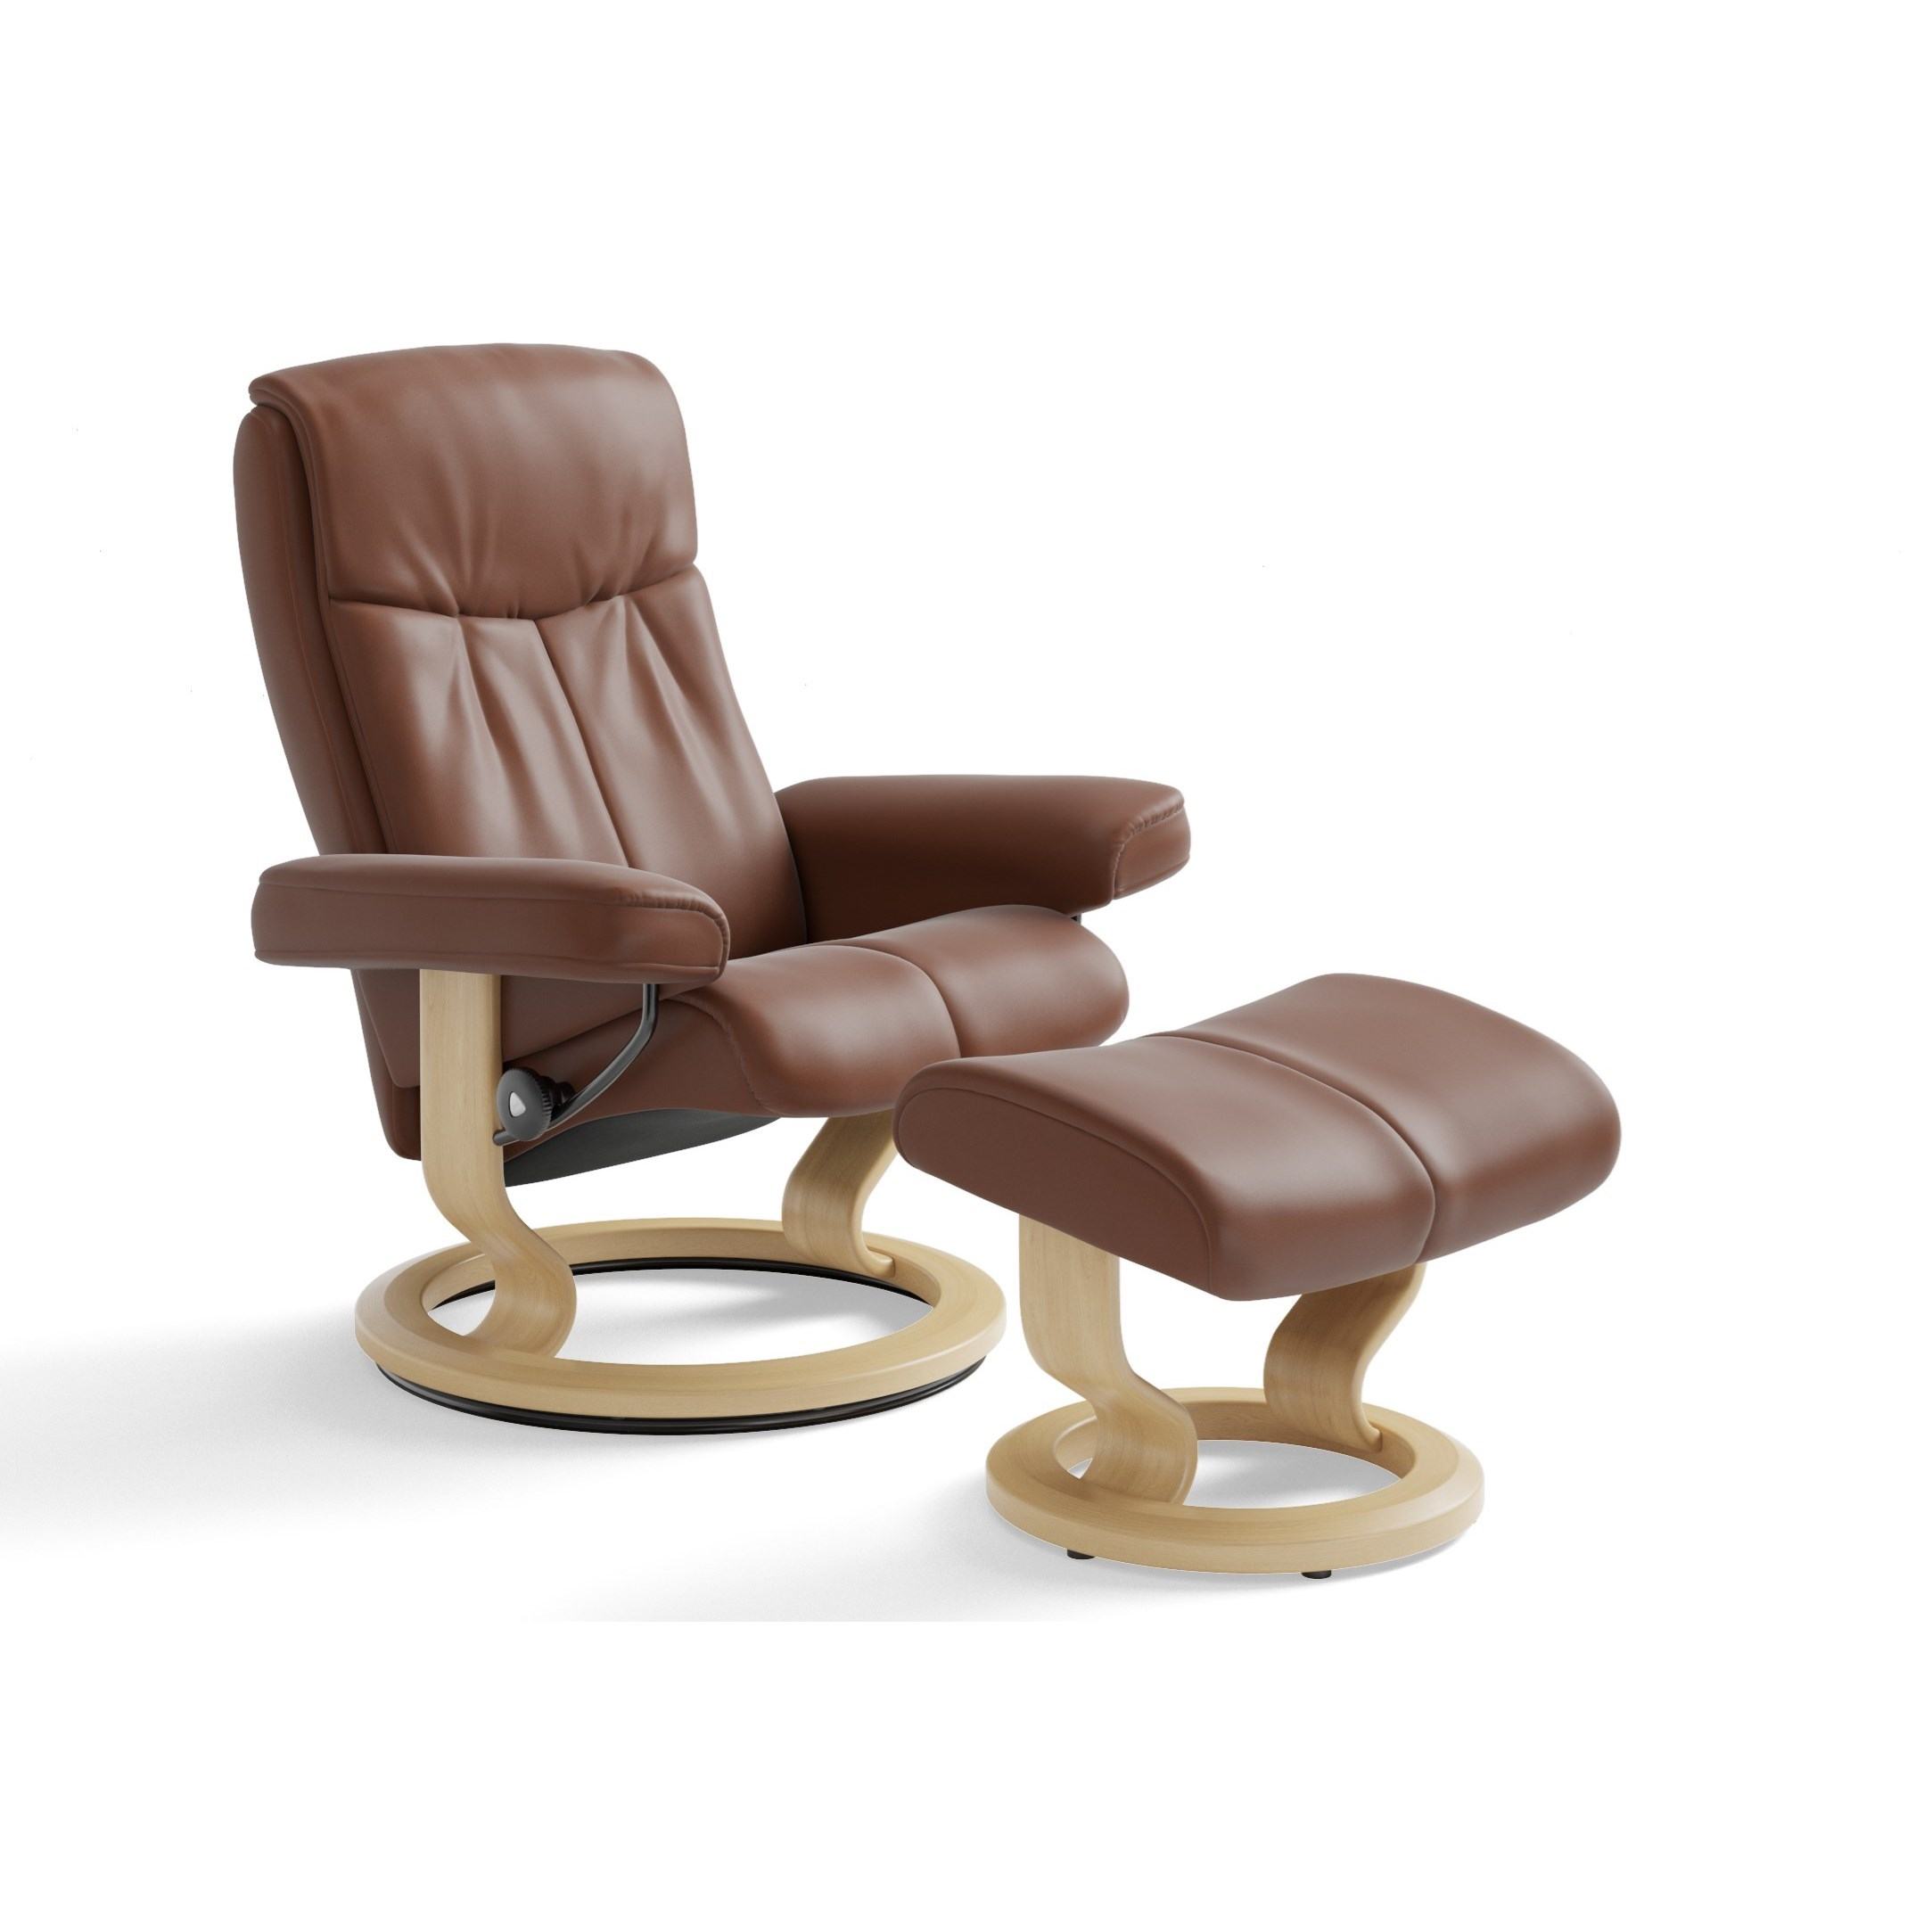 new ekornes chairs. Black Bedroom Furniture Sets. Home Design Ideas